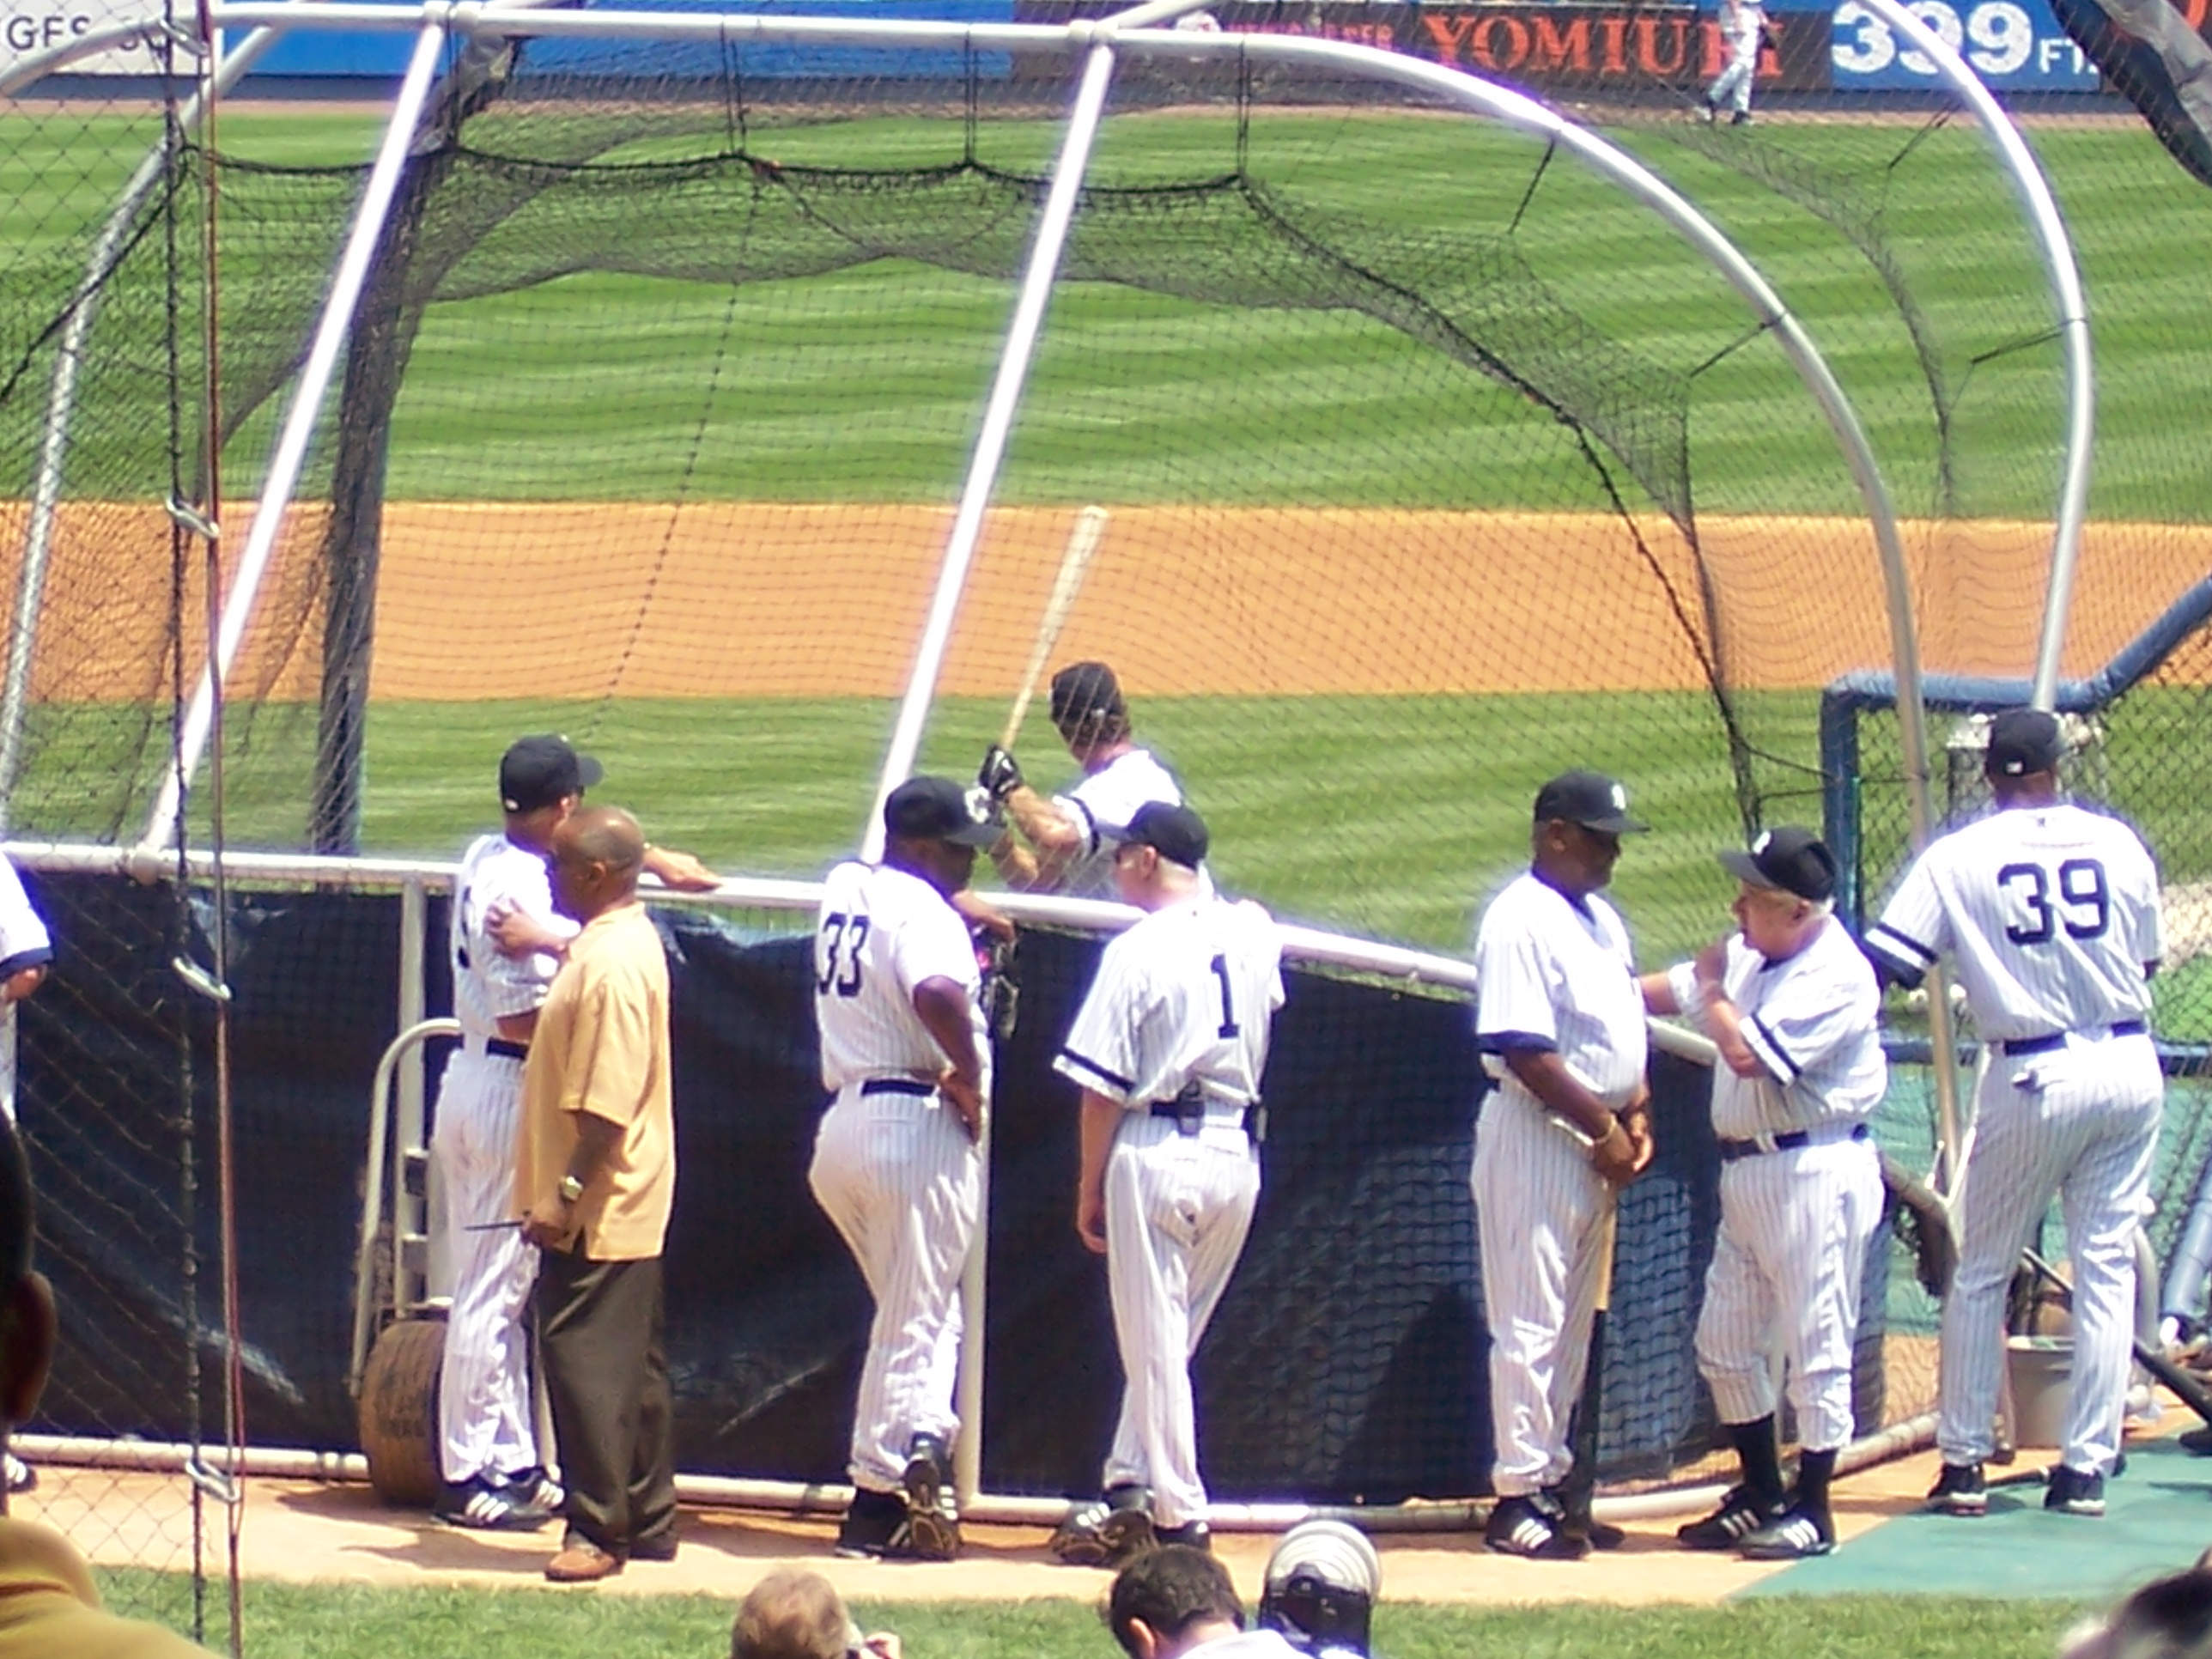 Griffey Sr., Bobby Murcer, and others around the batting cage OT Day.jpg